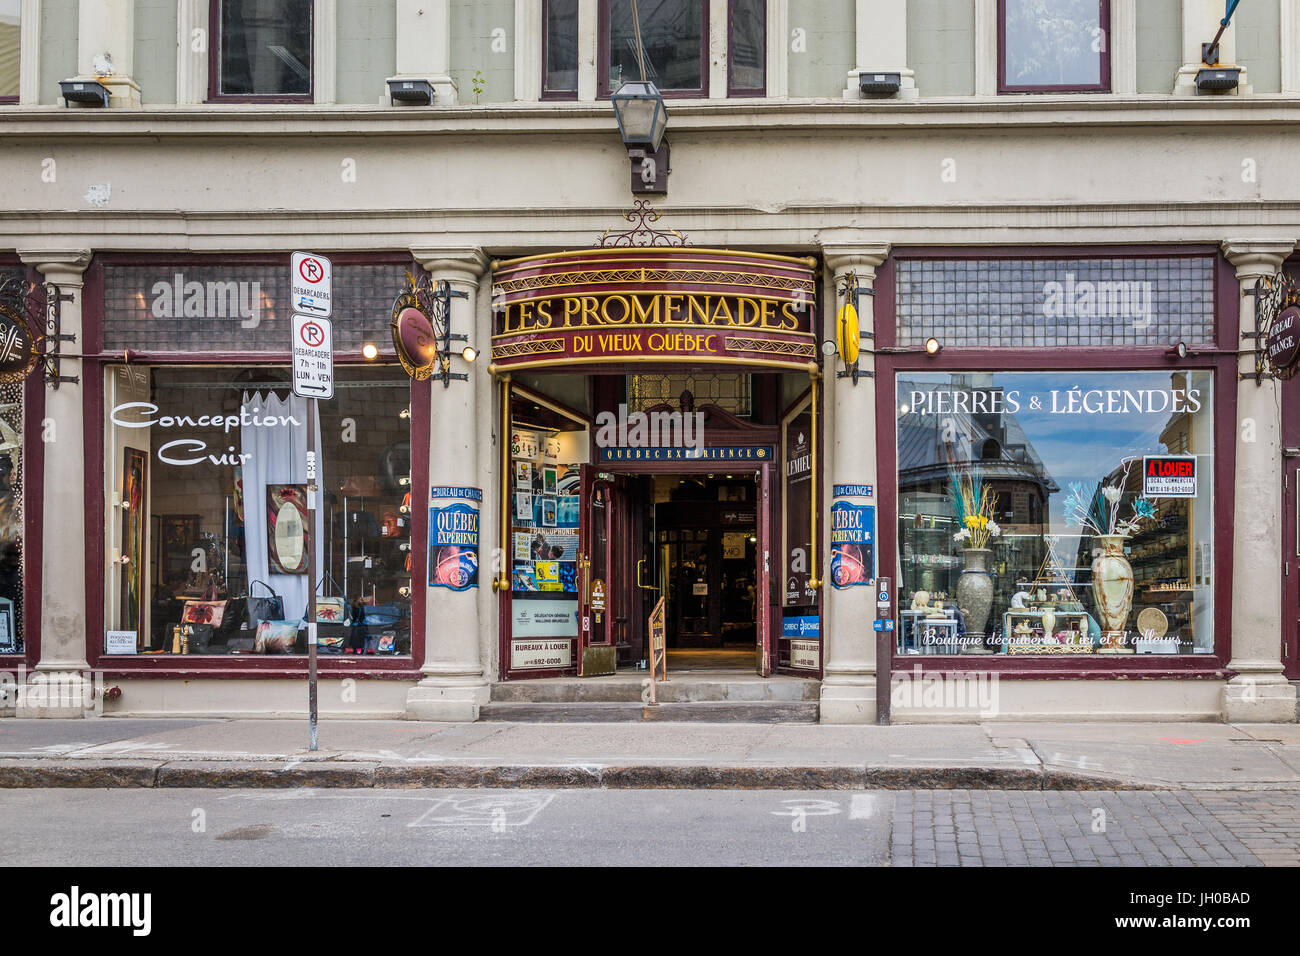 Quebec City, Canada - May 29, 2017: Old town street with shops and on winnipeg canada stores, alberta canada stores, new york stores, brazil stores, south carolina stores, quebec art, windsor canada stores, france stores, ottawa canada stores,